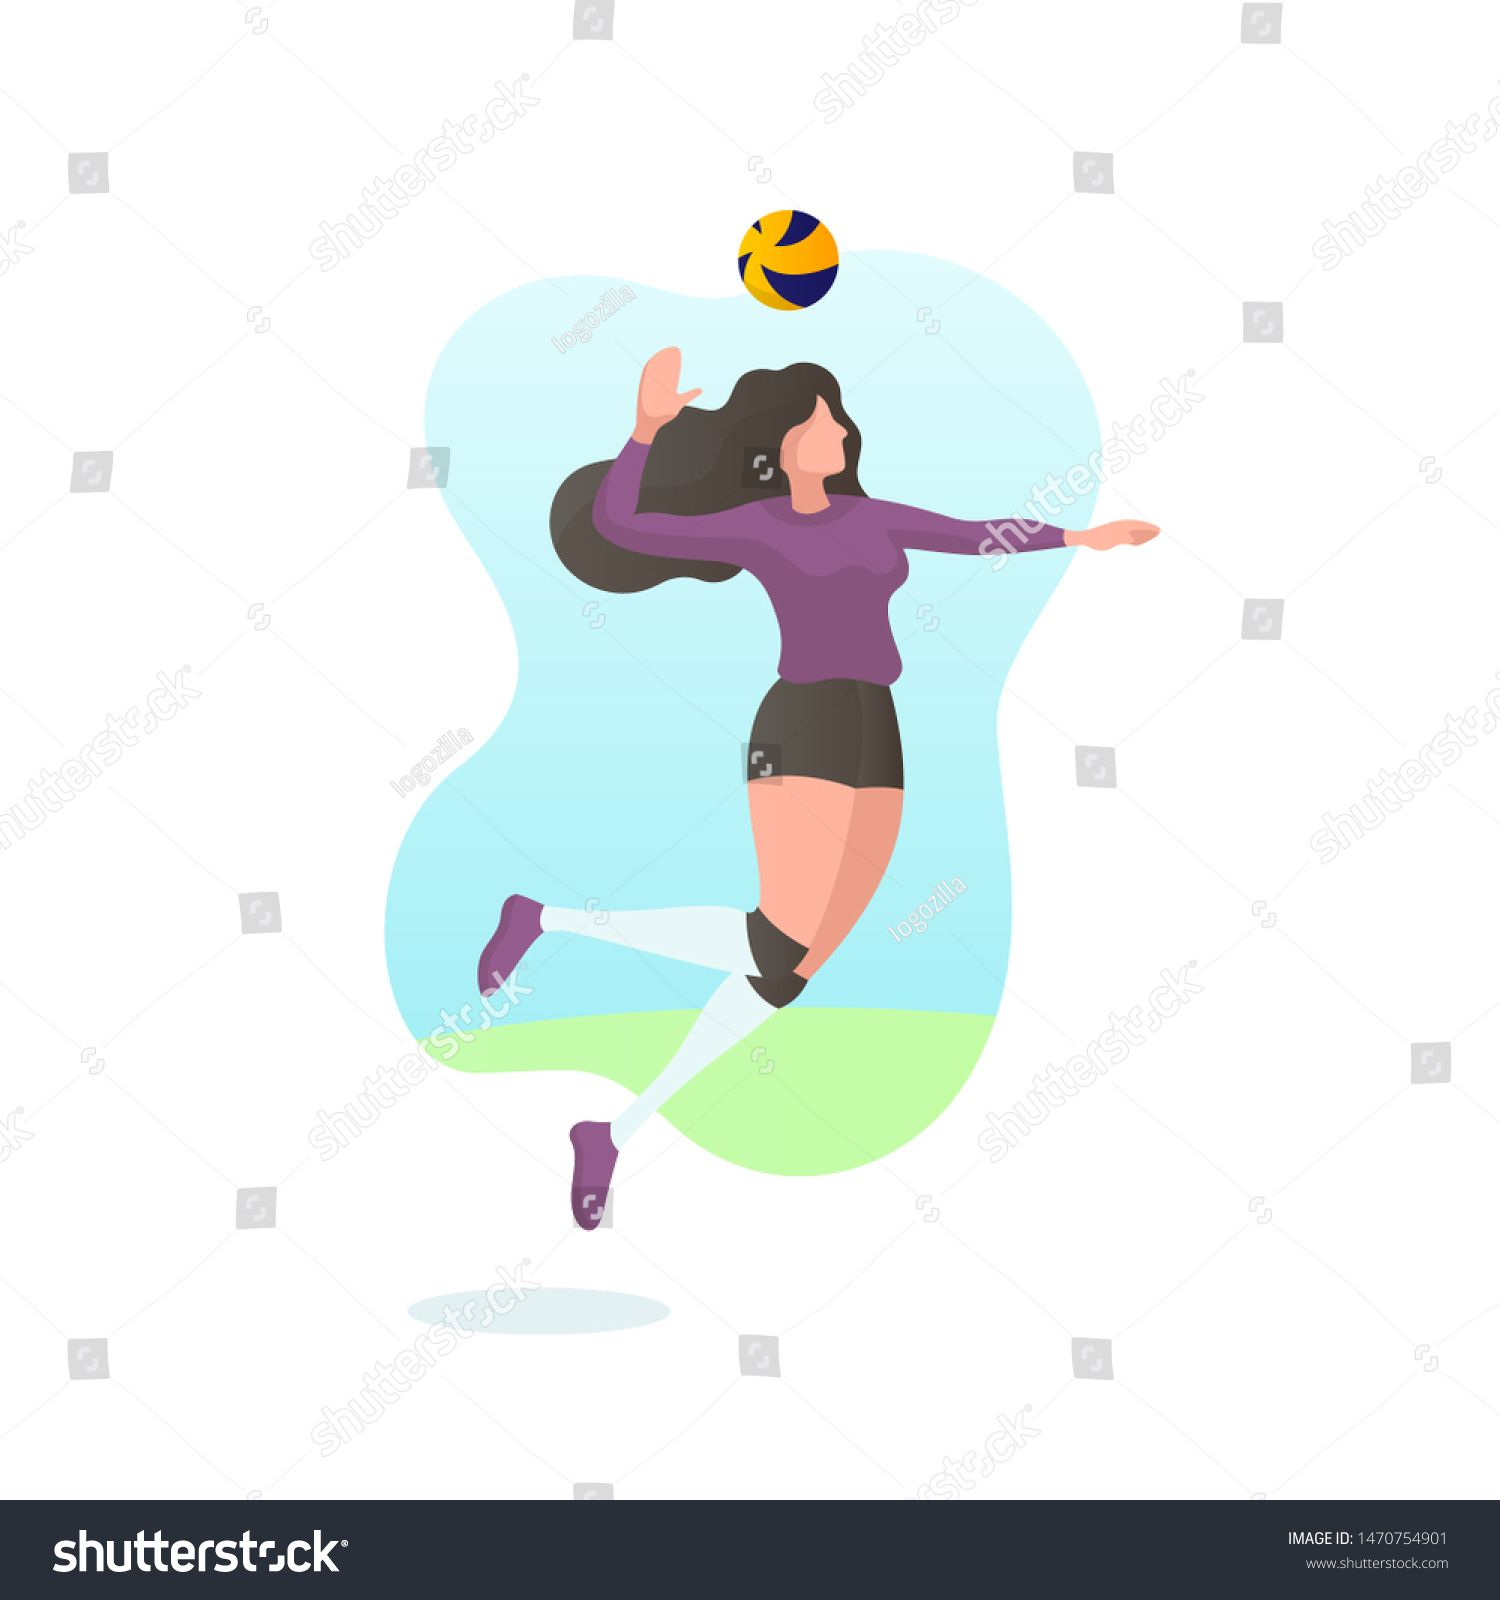 Caucasian Volley Ball Woman Player In Various Pose Serve Jumping And Smash The Ball In Flat Illustration Vector F Photo Editing Stock Photos Design Template